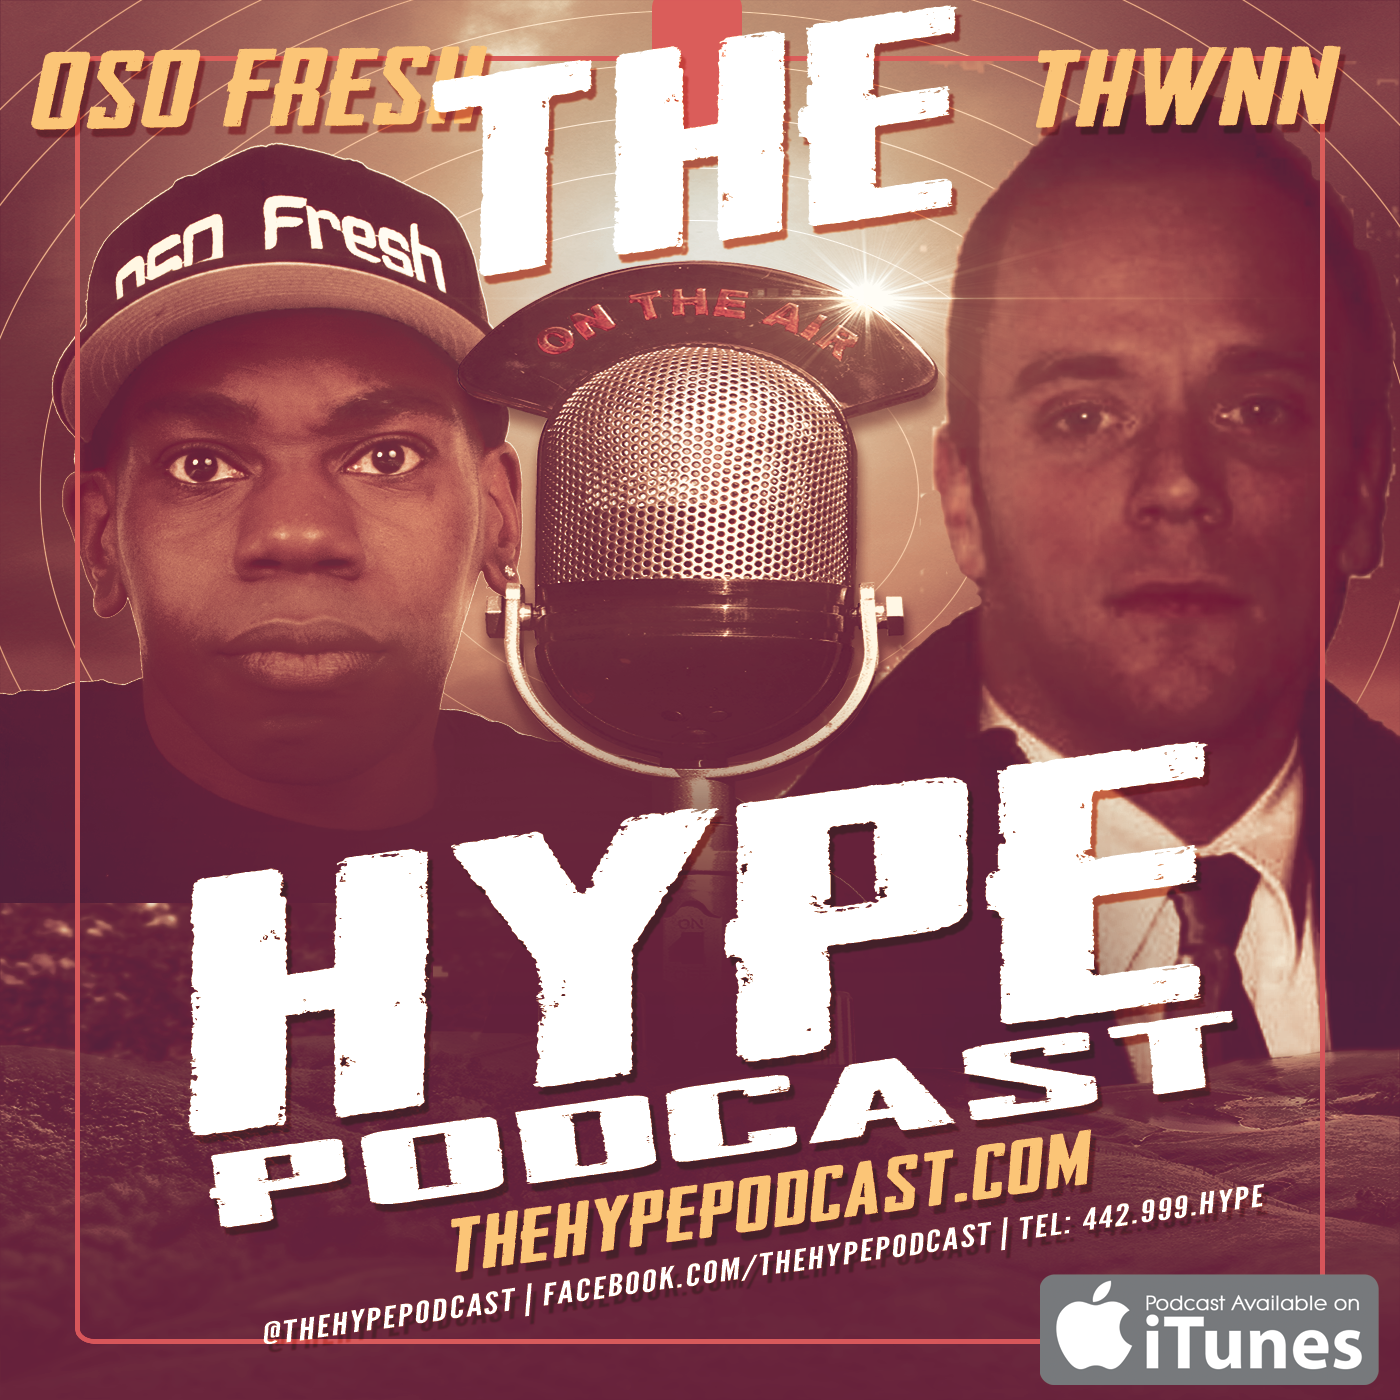 Artwork for hype podcast episode 1008 who gots the camera